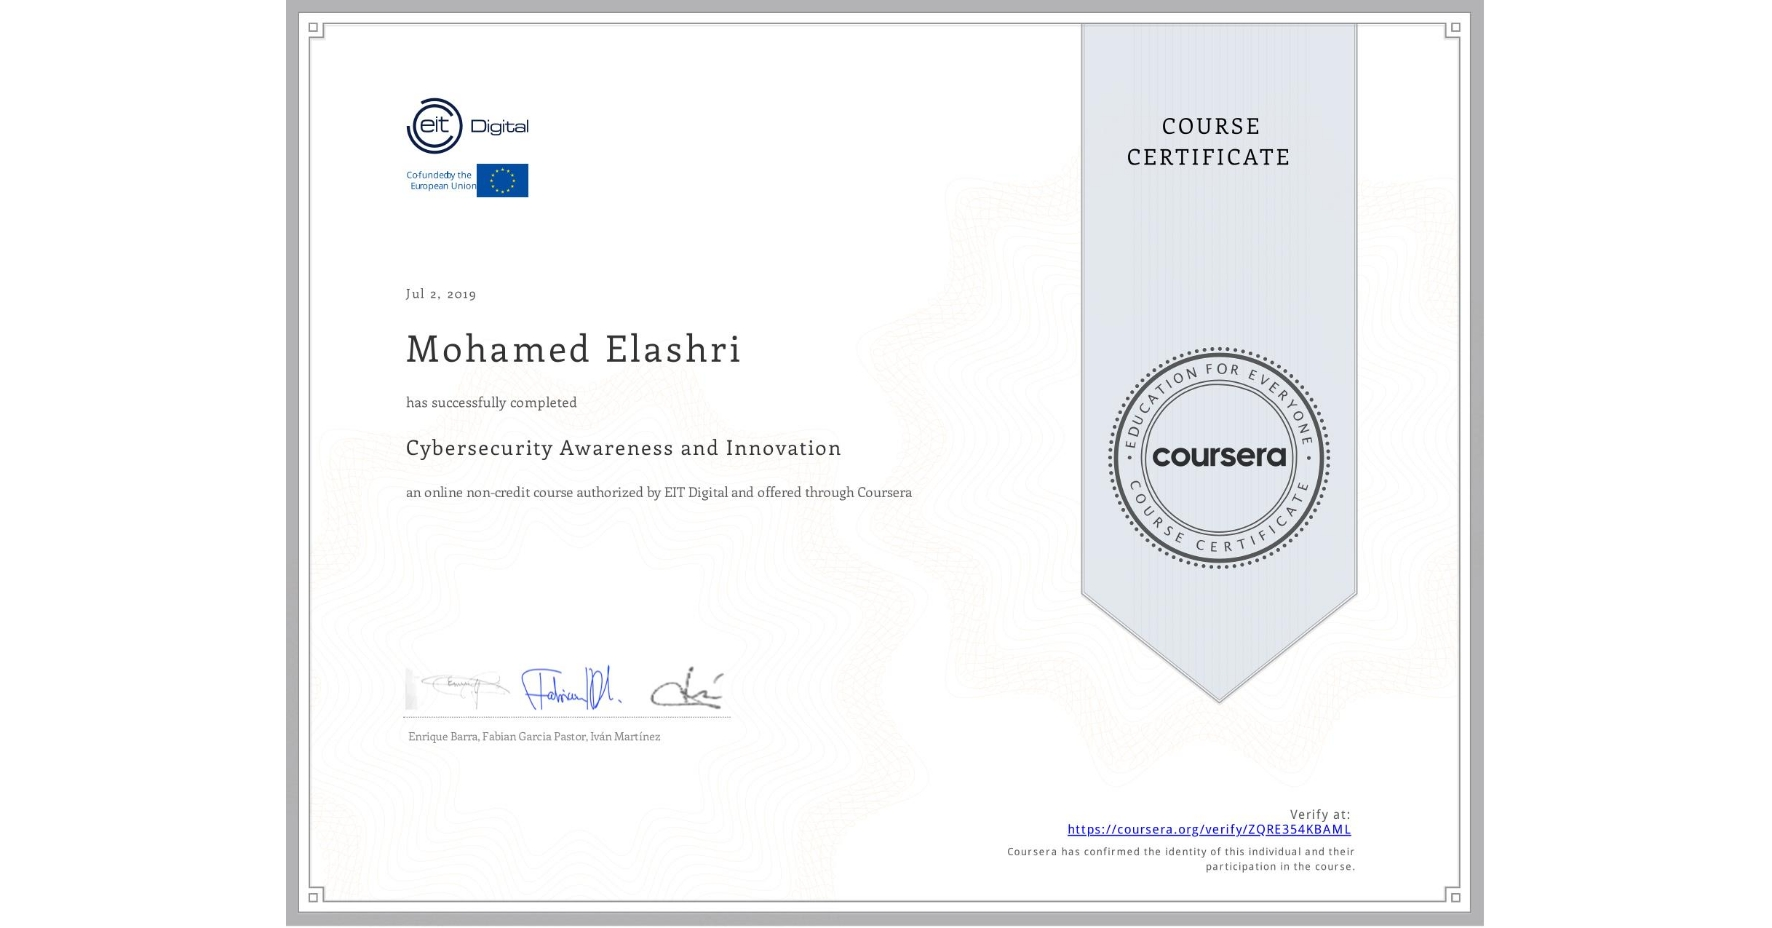 View certificate for Mohamed Elashri, Cybersecurity Awareness and Innovation, an online non-credit course authorized by EIT Digital  and offered through Coursera